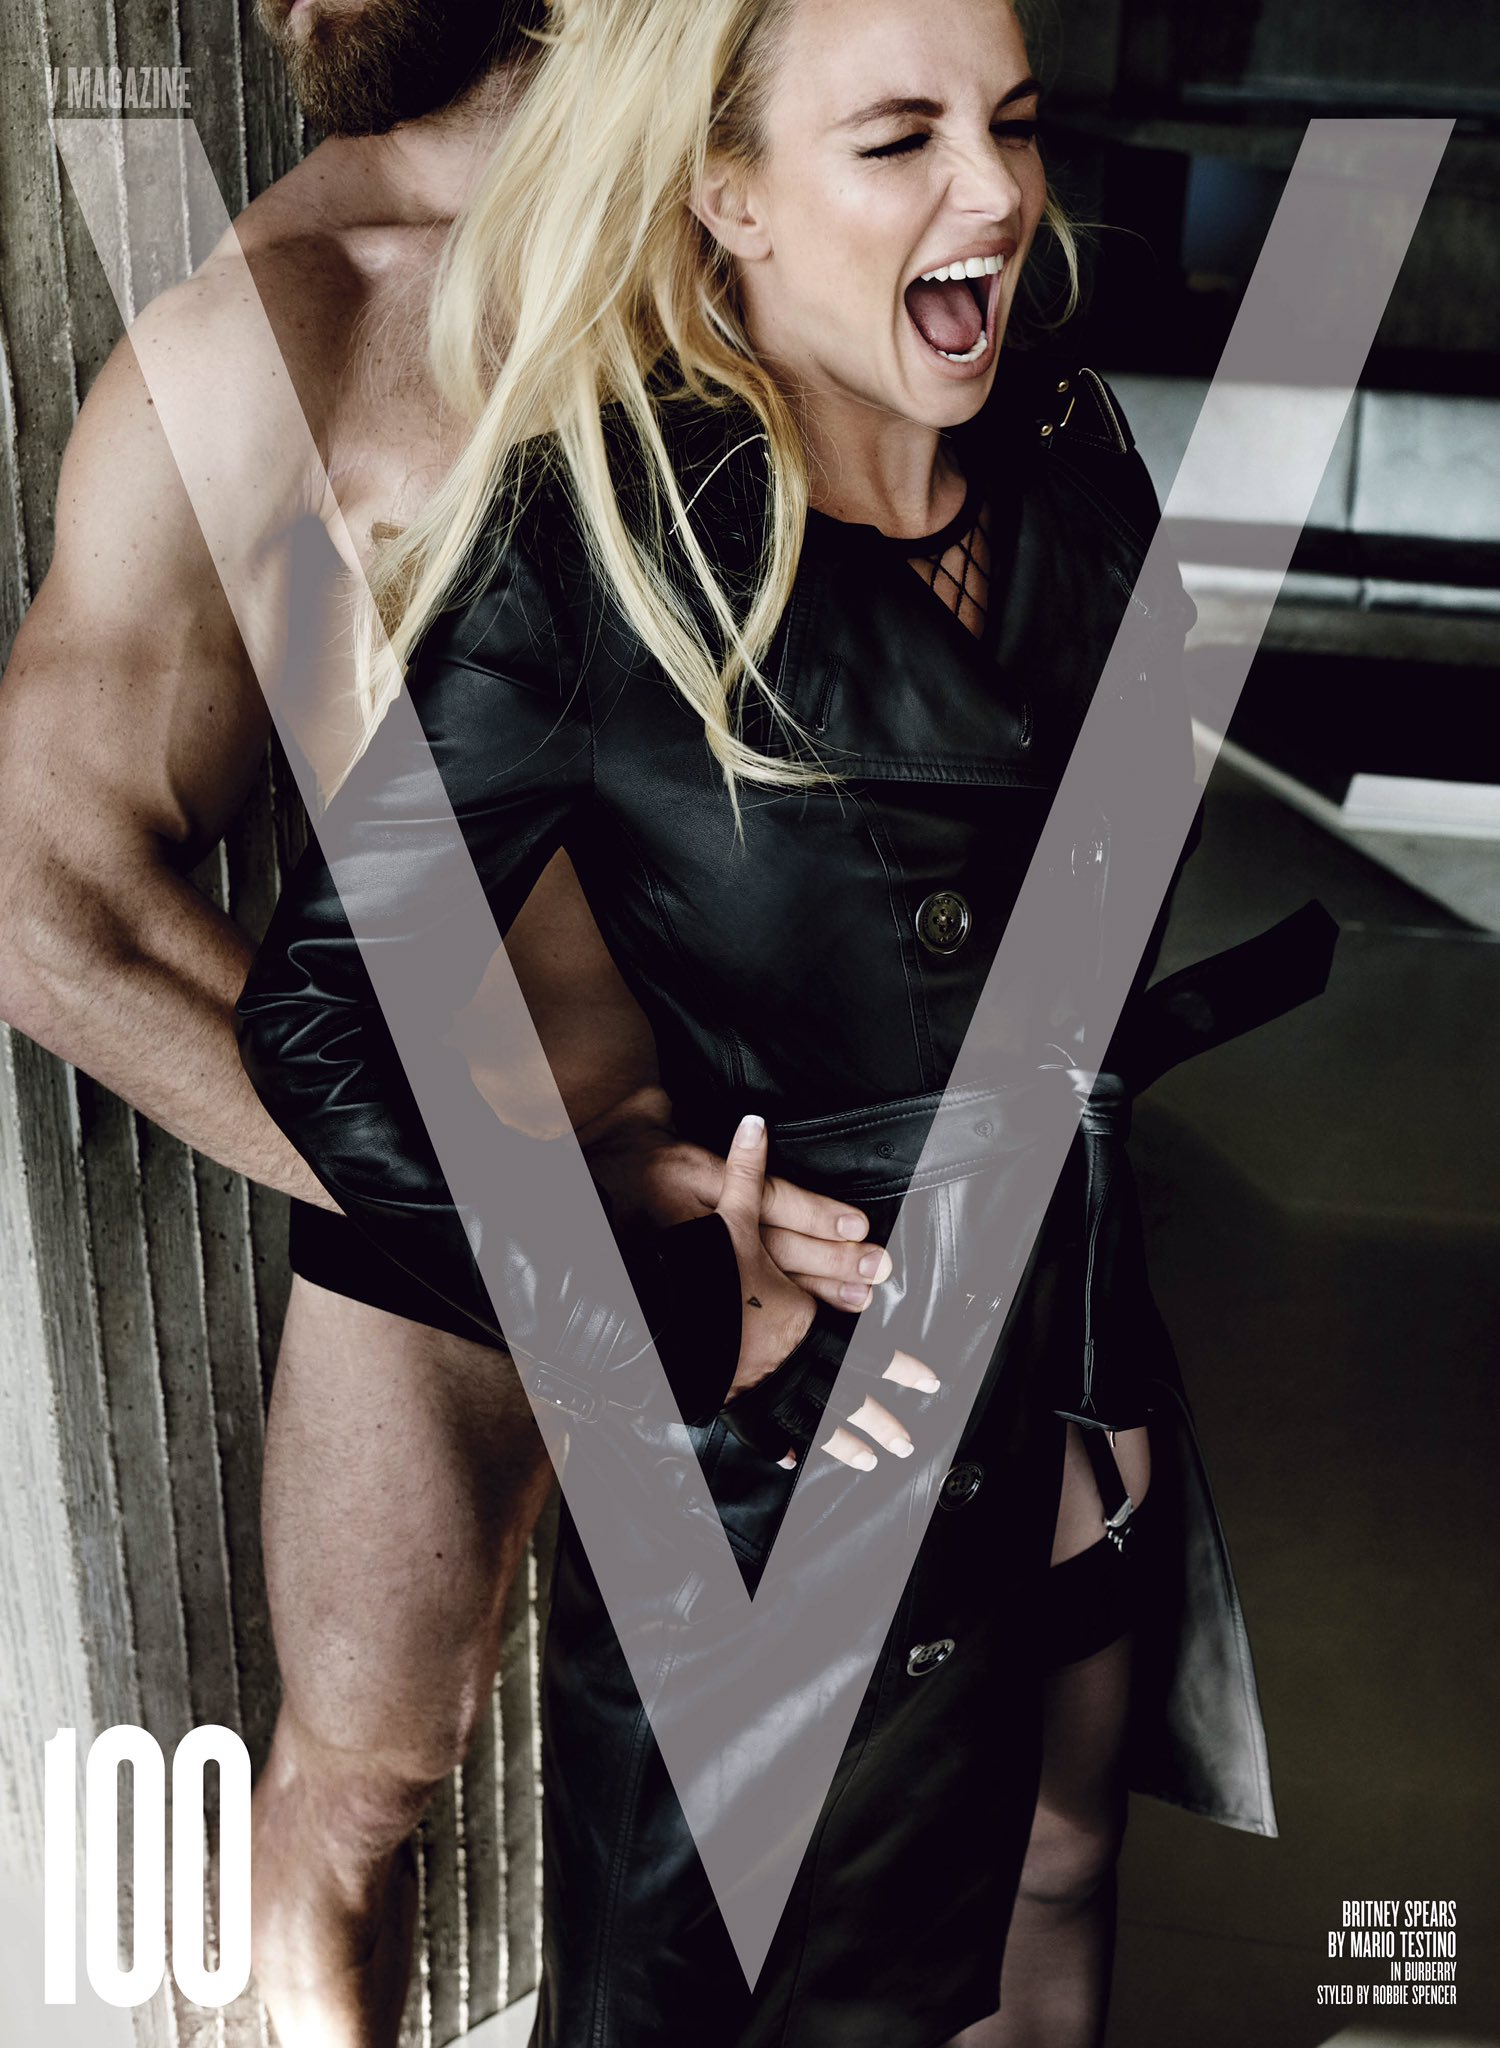 Grab @vmagazine's #V100 issue on stands today! https://t.co/uRpb9lQMKM